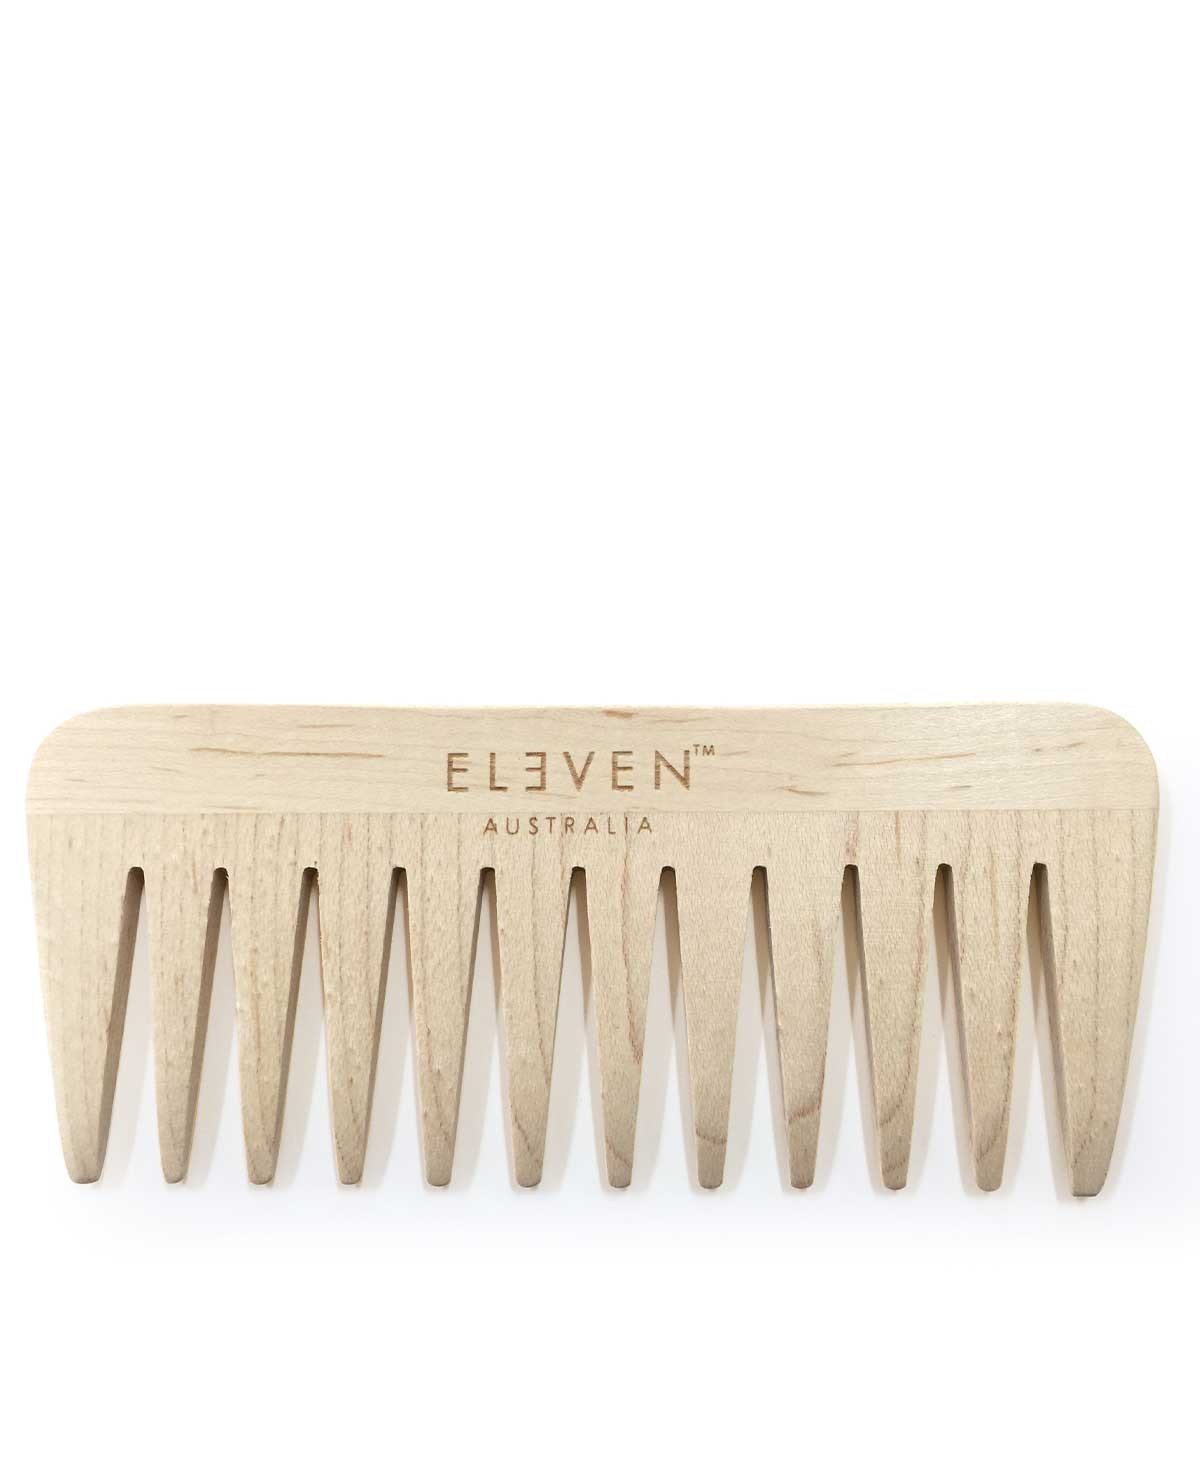 Eleven Wooden Wide Tooth Comb